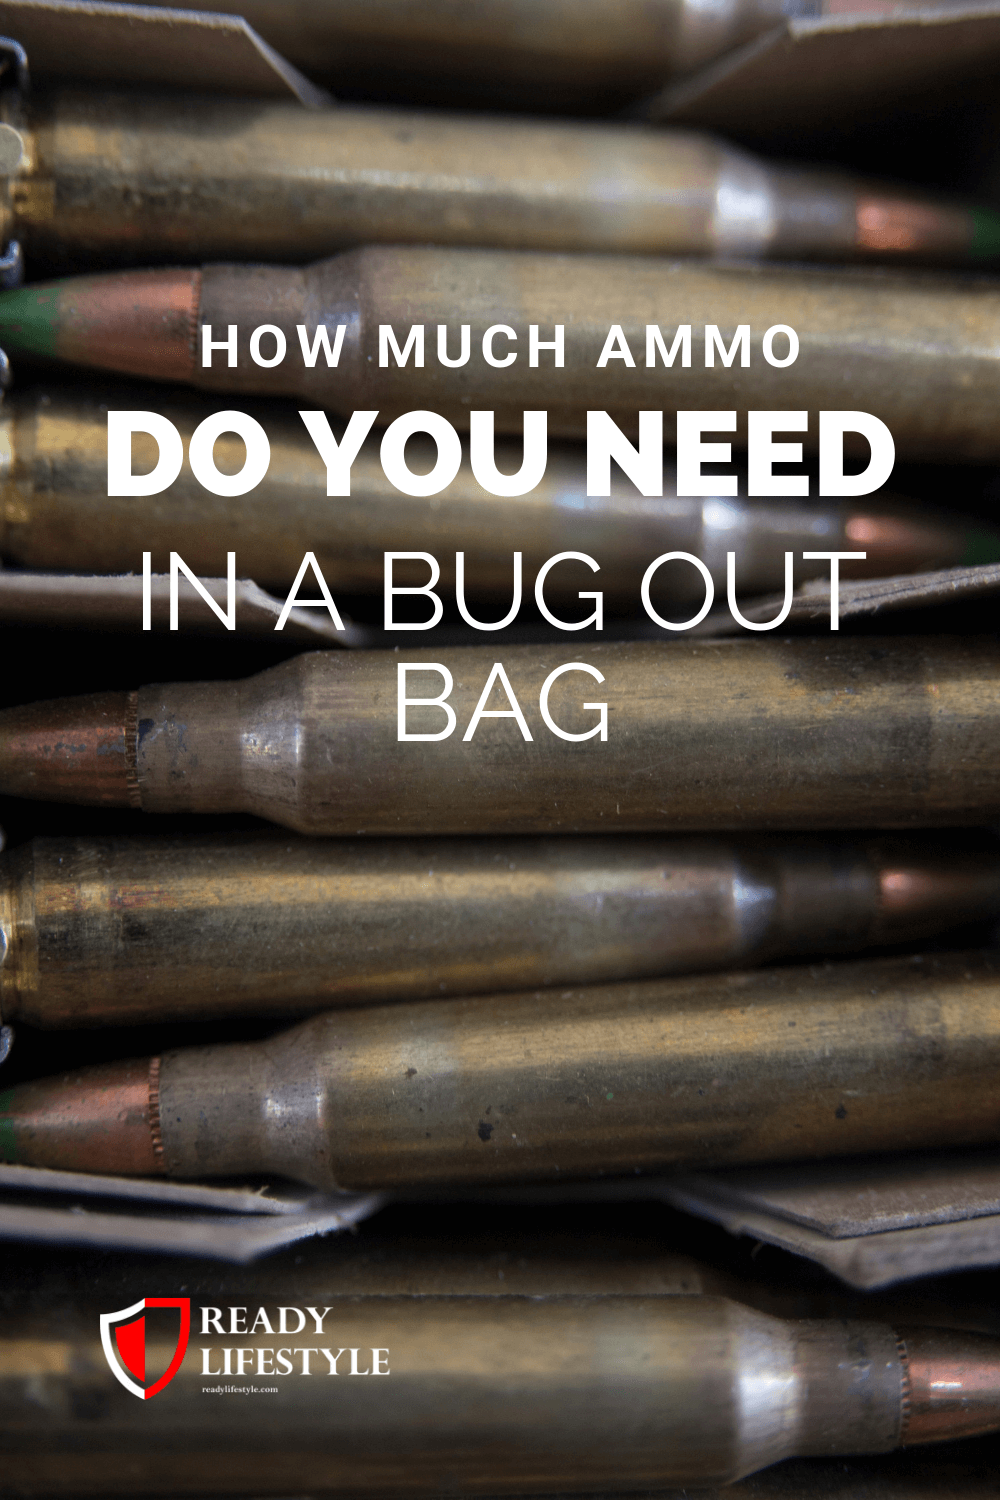 How Much Ammo Do You Need In A Bug Out Bag